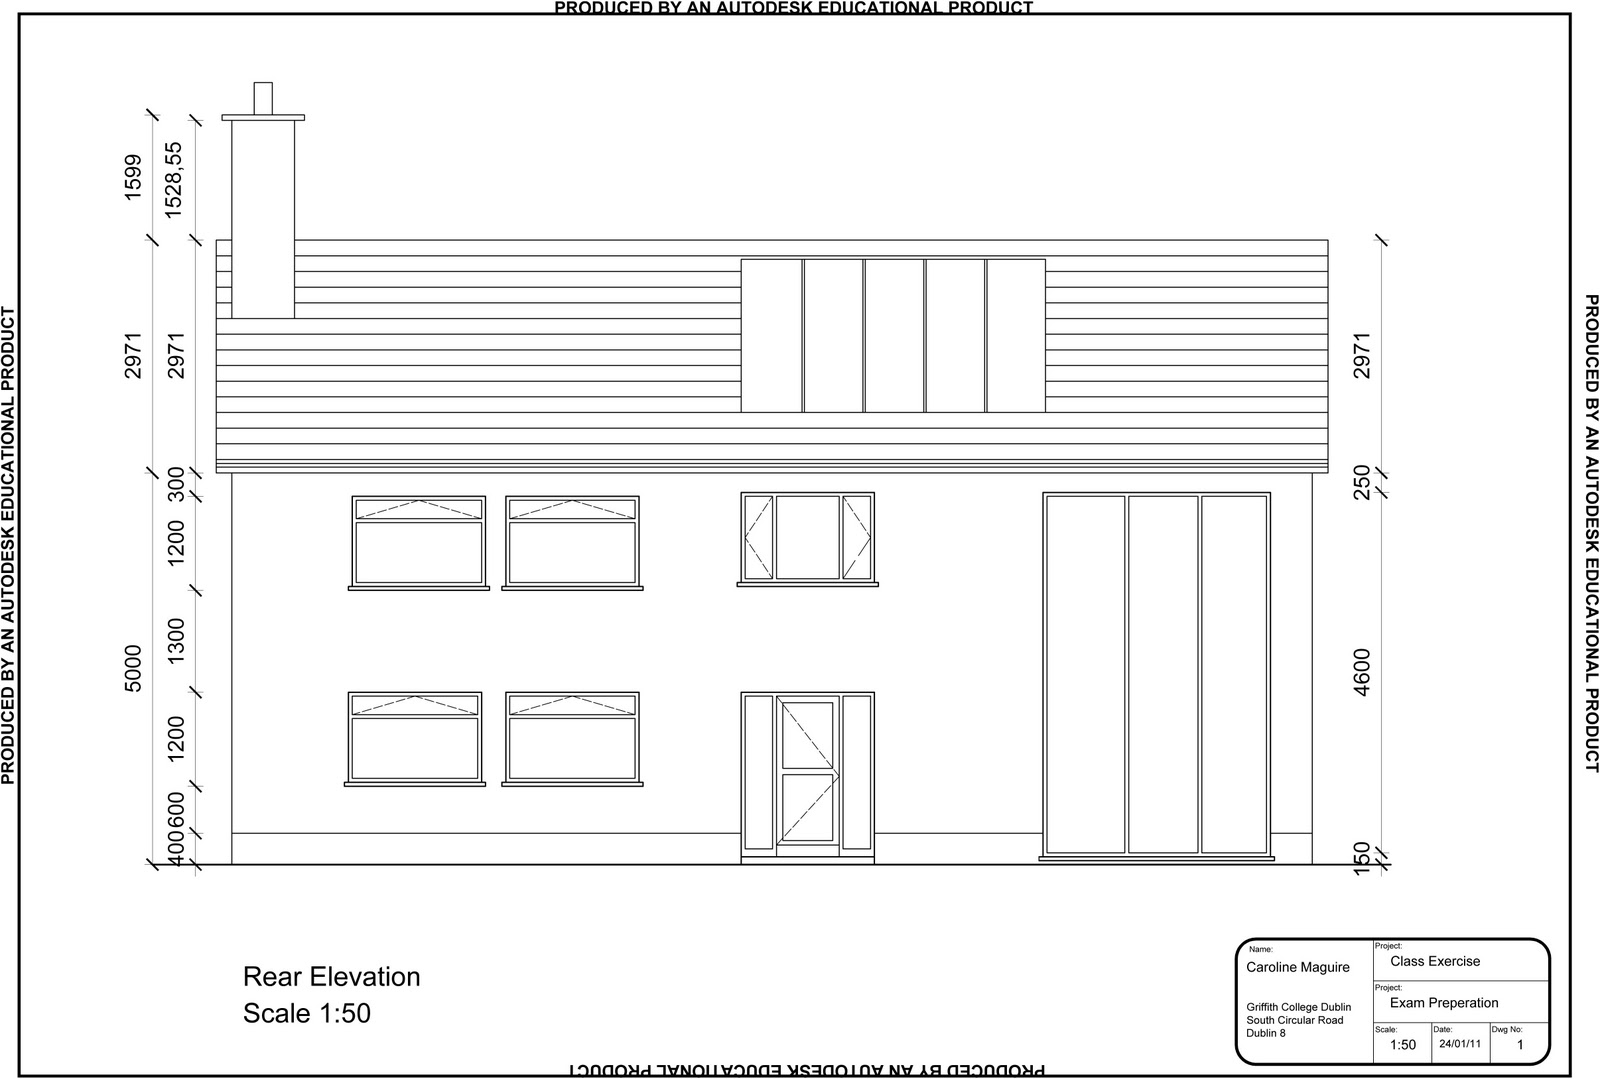 Caroline maguire designs cad for What is rear elevation